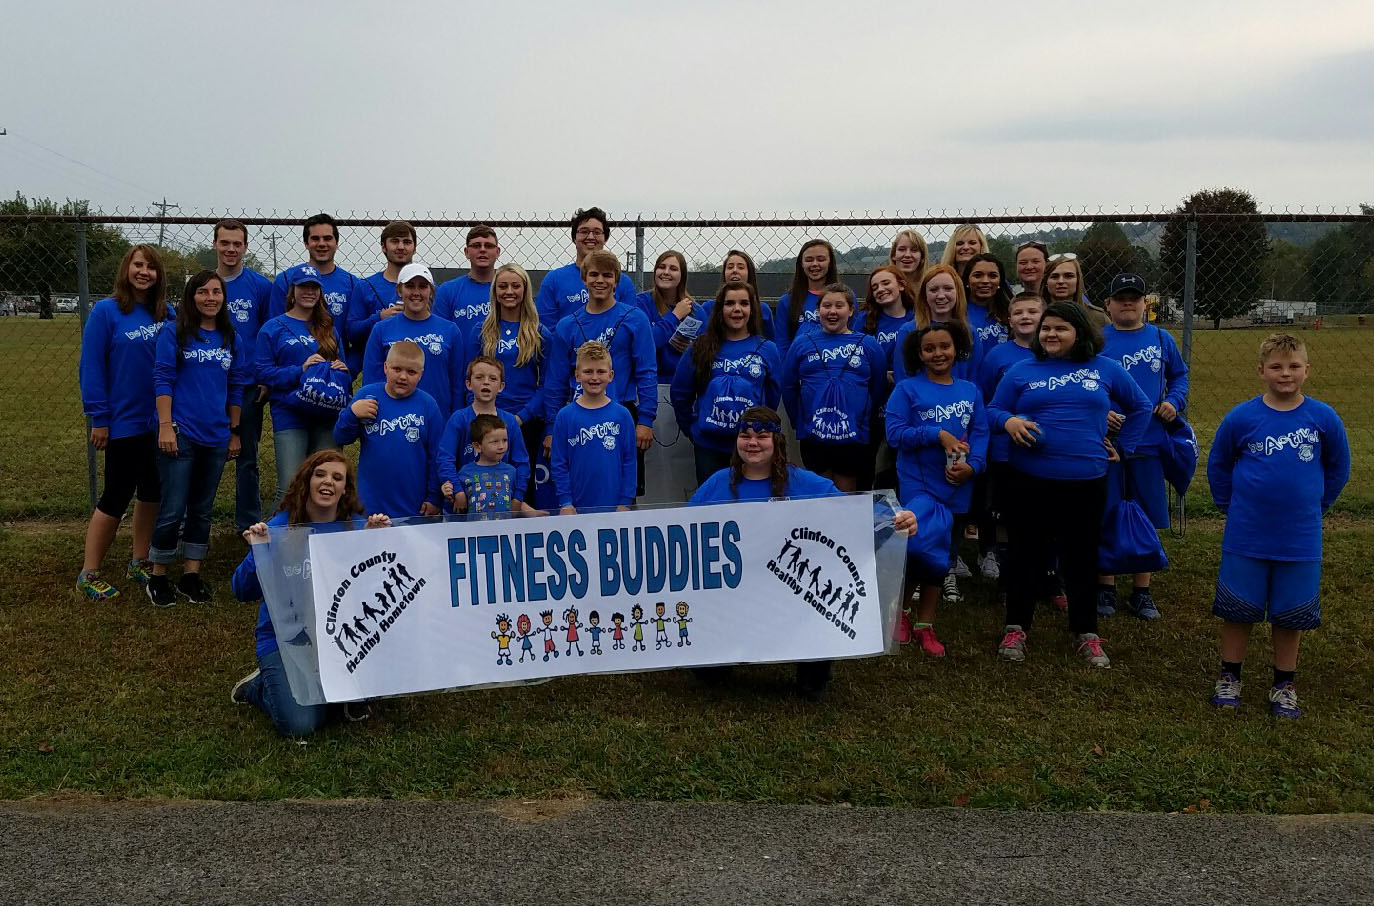 Fitness Buddies is a new program sponsored by Clinton County Healthy Hometown that partners high school students with elementary school students to encourage activity and healthy living!